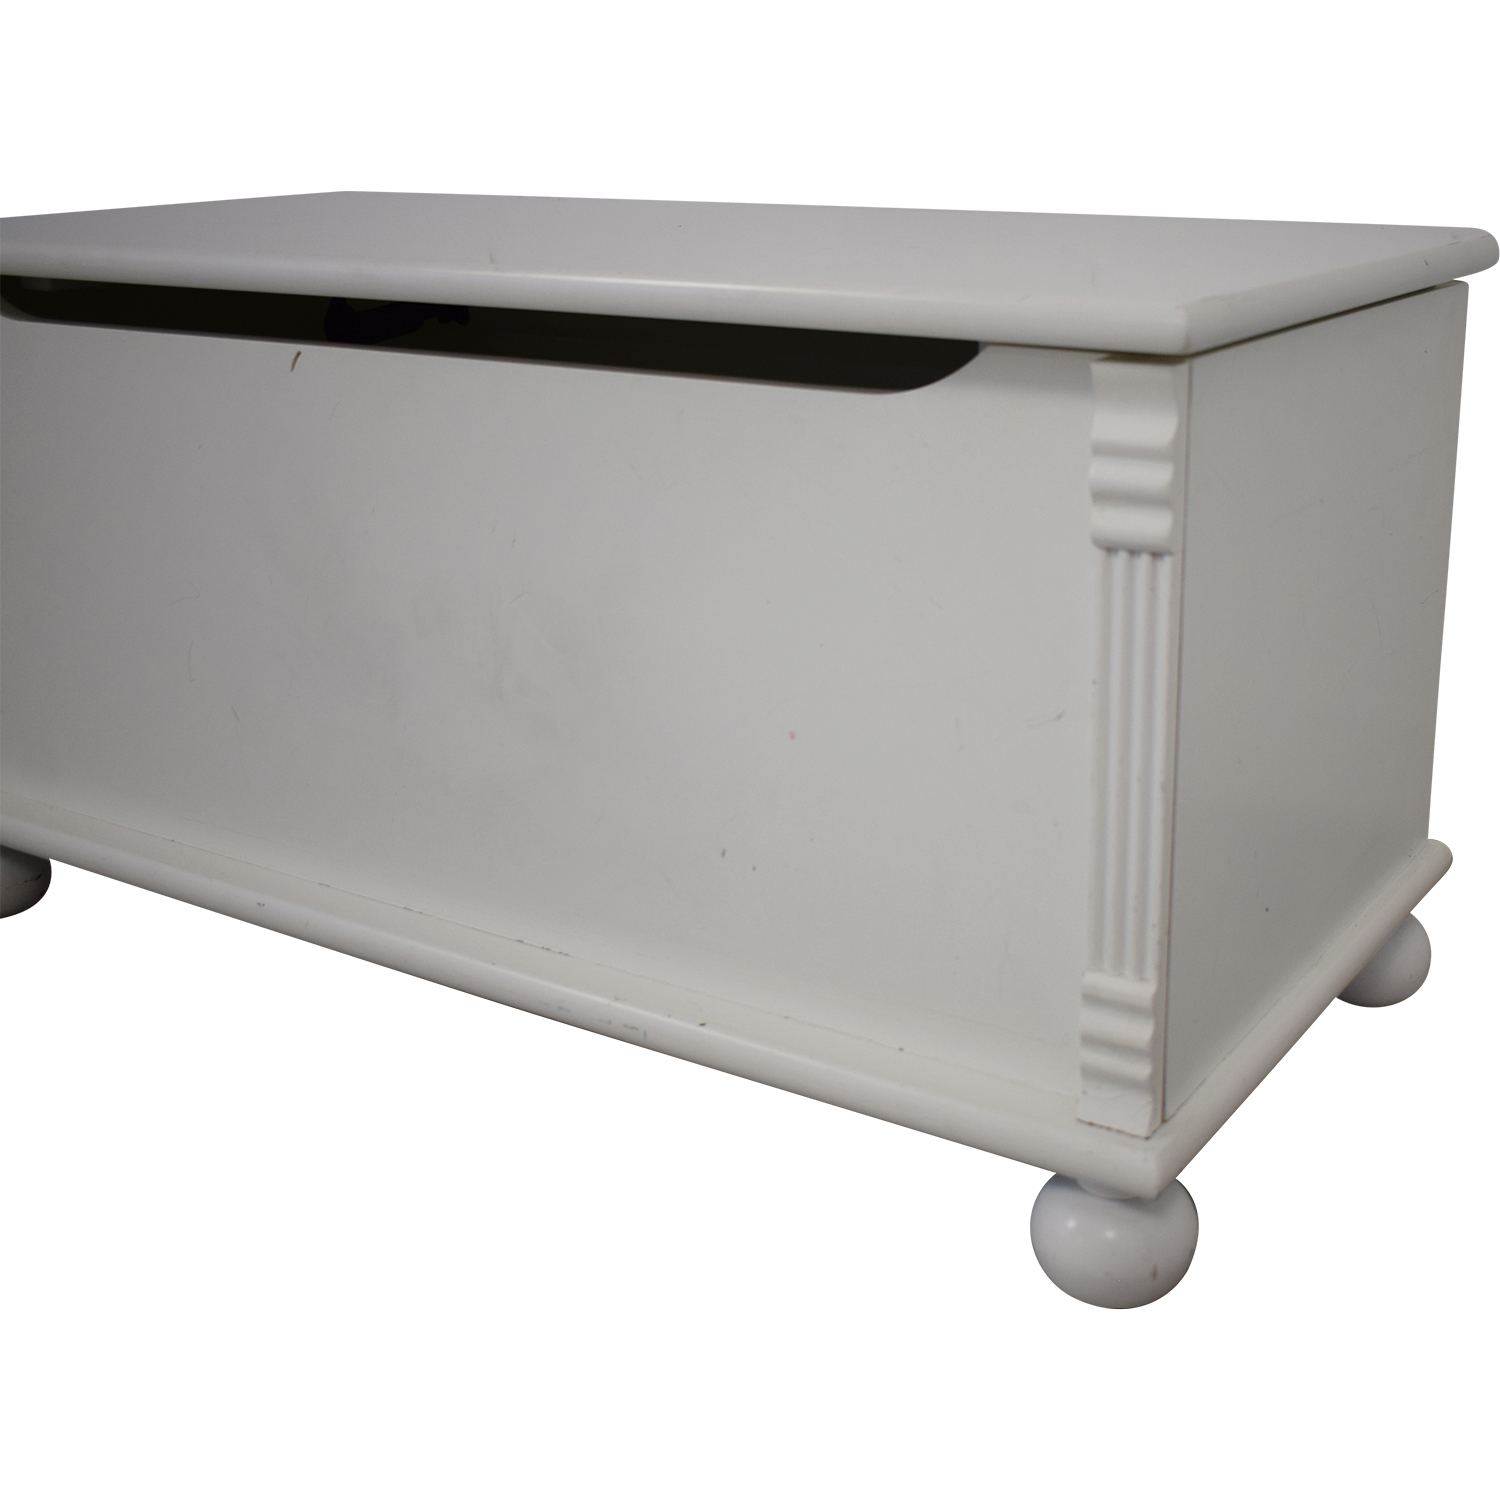 Bellini Bellini Toy Chest white